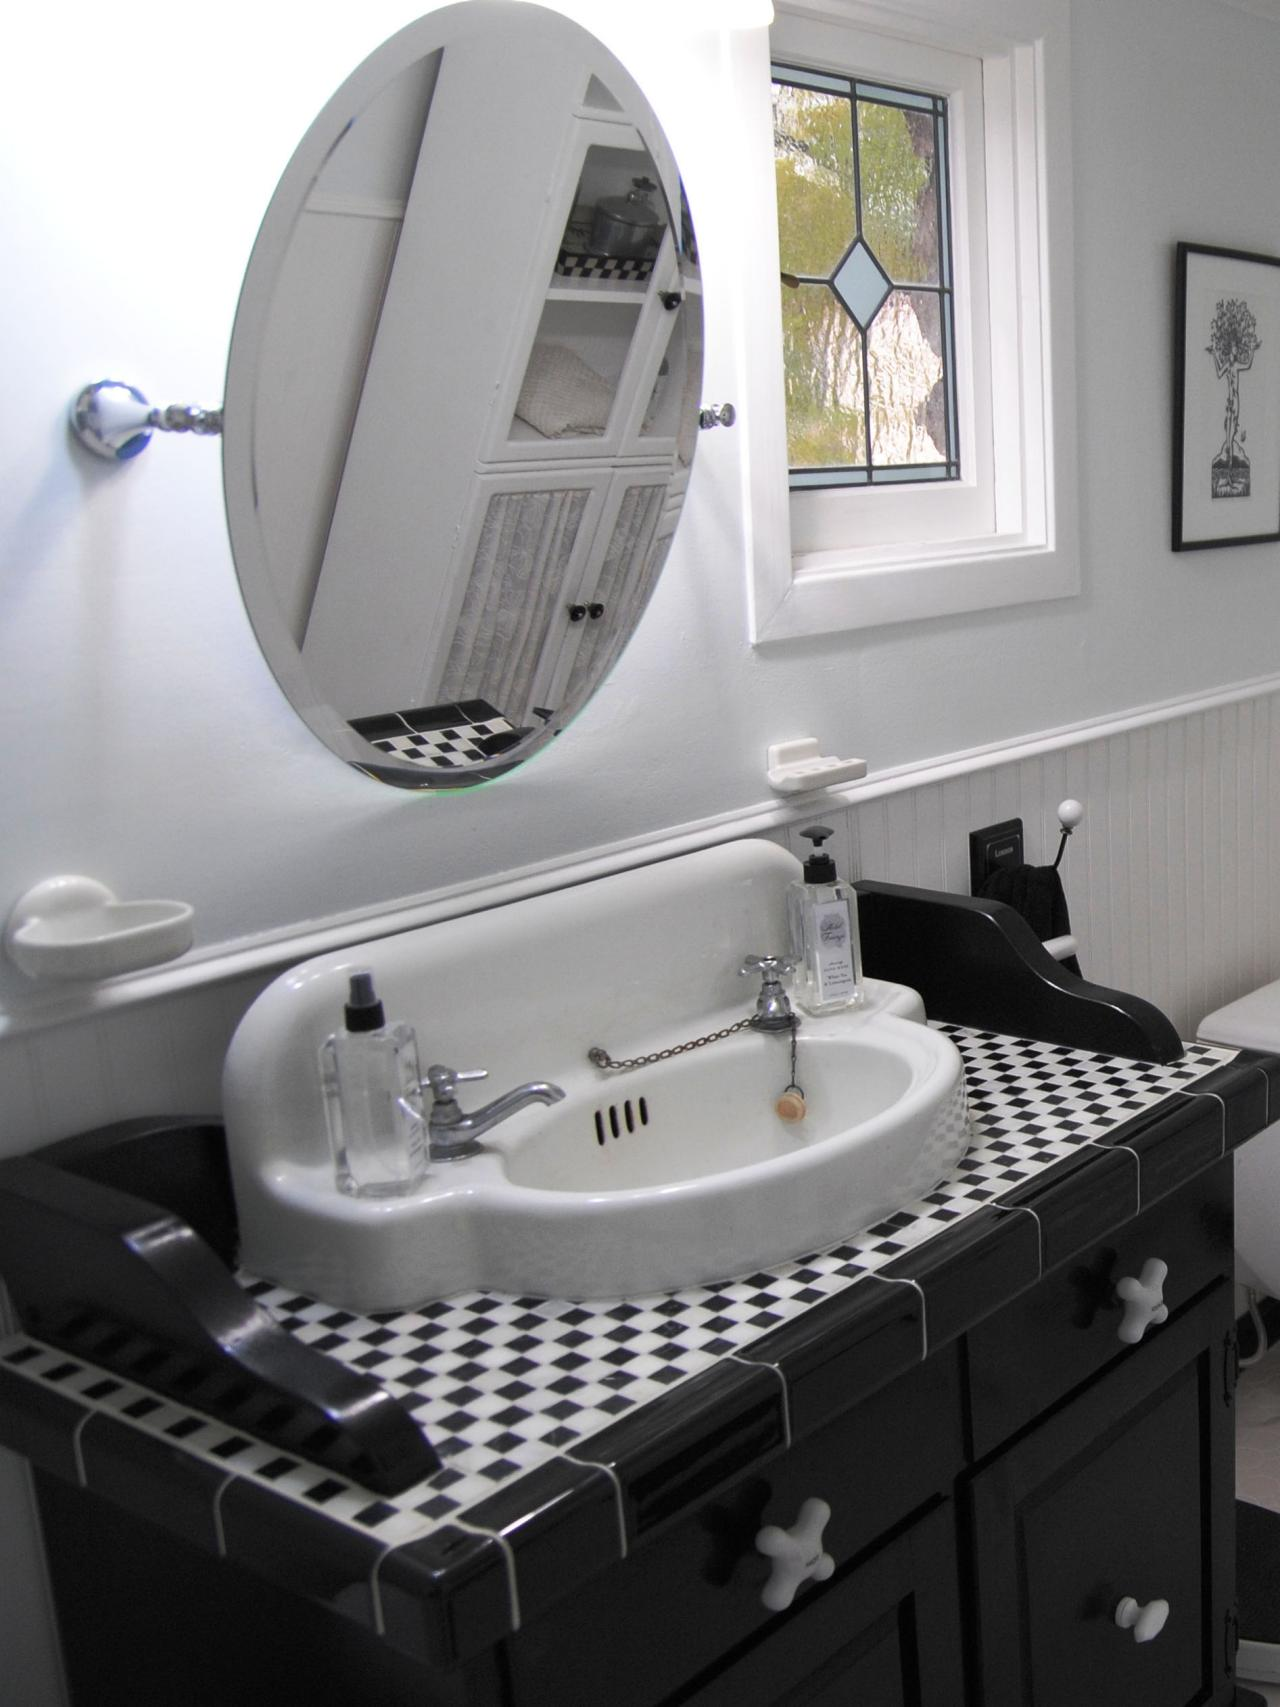 A small checkered addition to the bathroom vanity